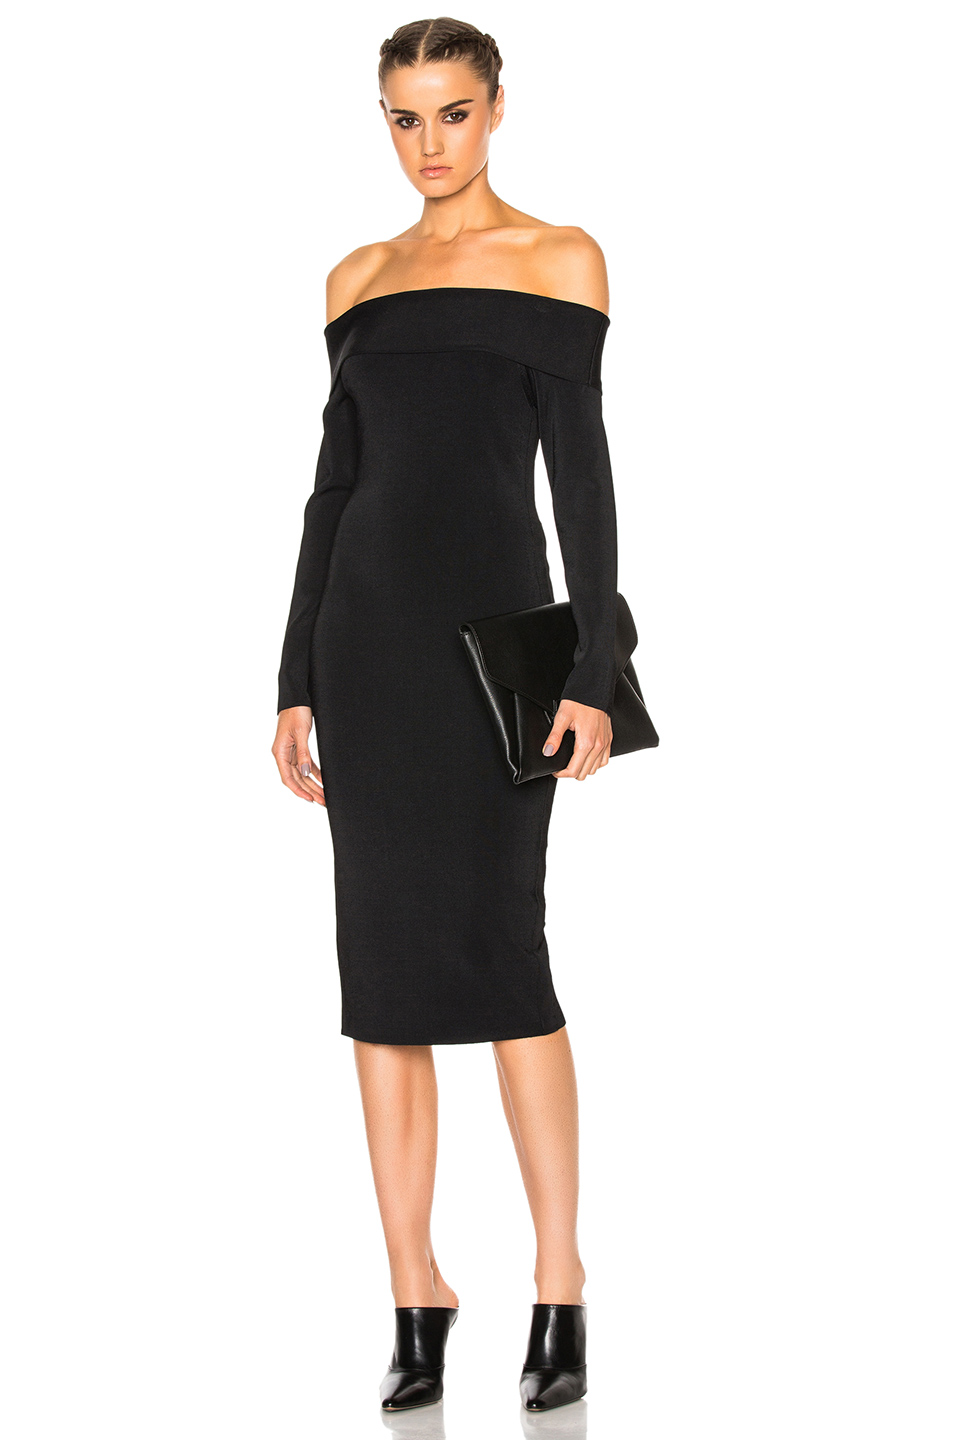 T by Alexander Wang Off The Shoulder Long Sleeve Dress in Black